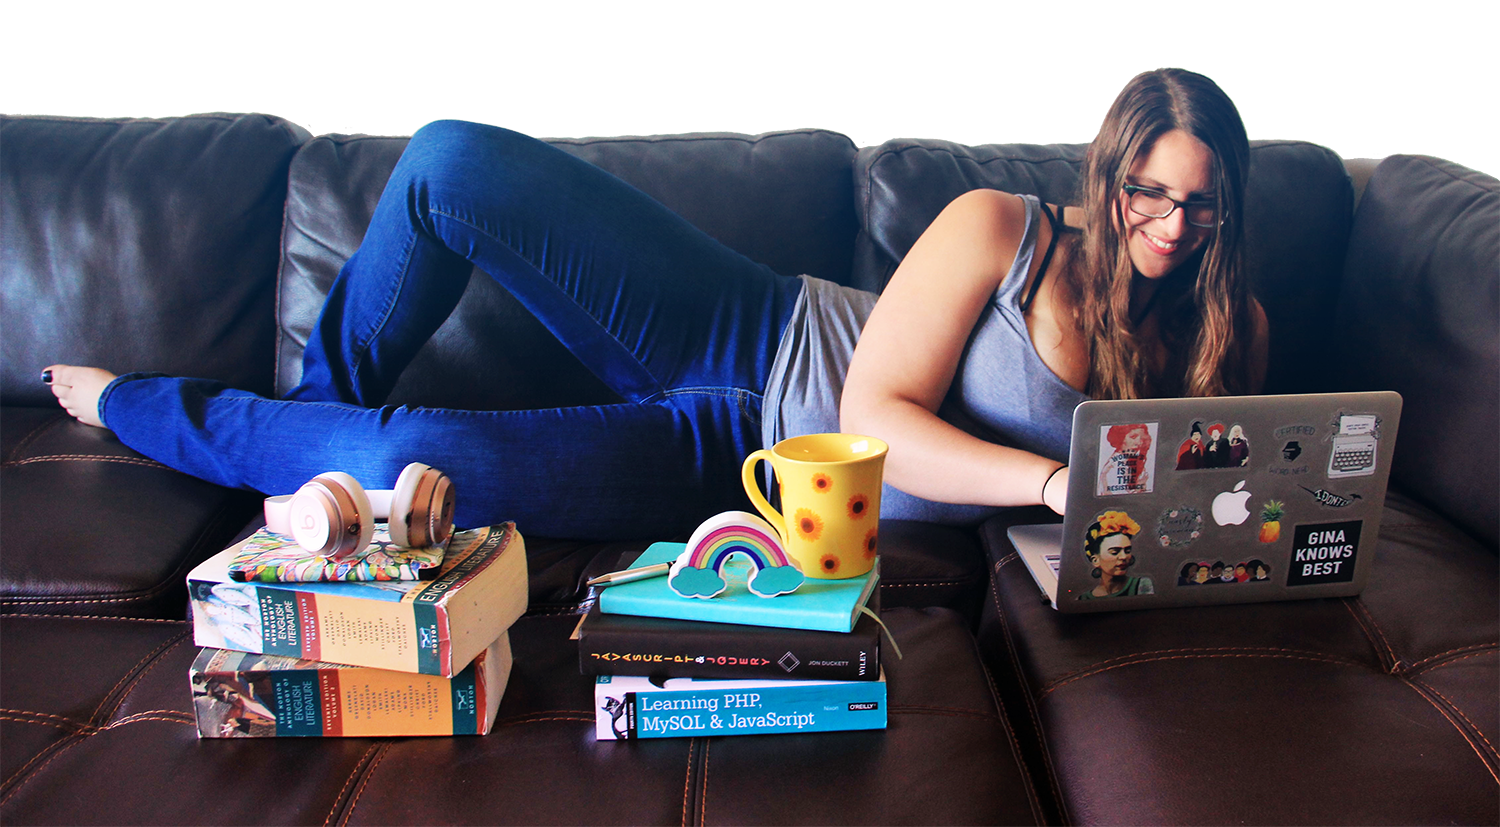 a photo of a woman with brown hair and glasses wearing jeans and a grey tank top lying on a brown leather couch with a laptop covered in stickers in front of her. Also on the couch in front of her are stacks of books topped with a pair of headphones and an eraser shaped like a rainbow.